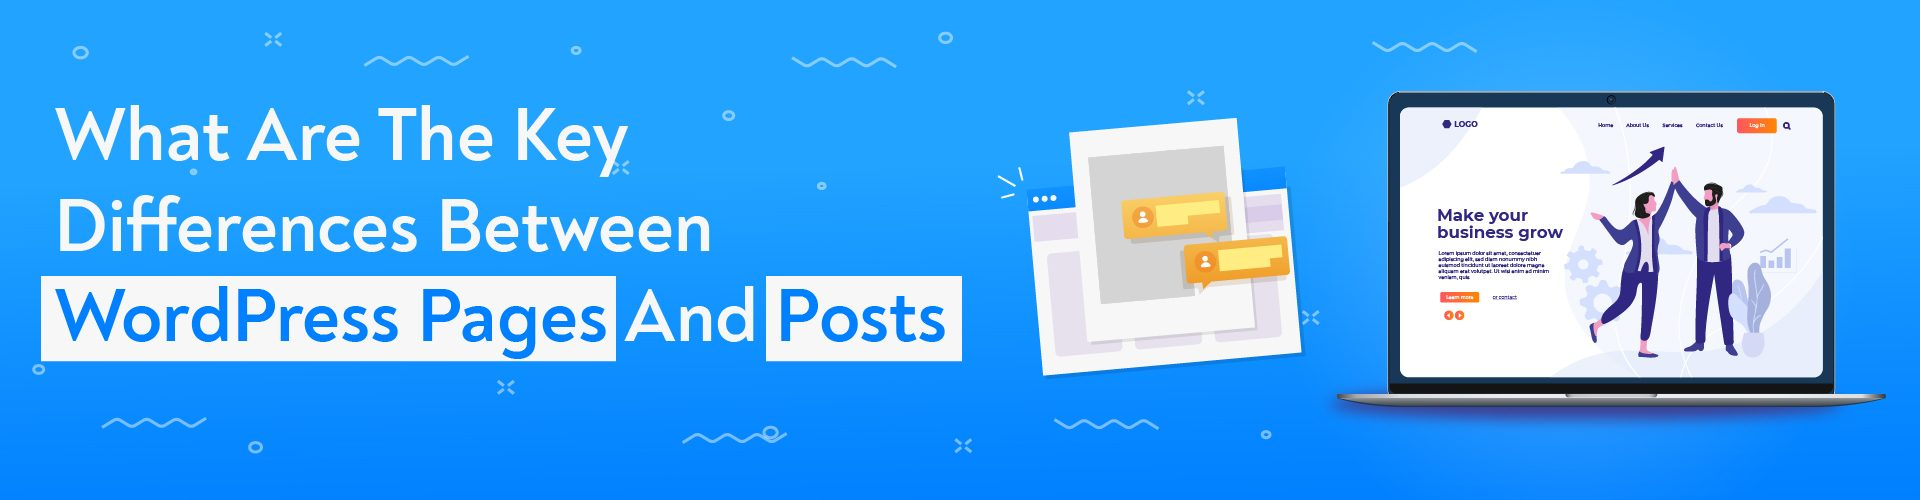 What Are The Key Differences Between WordPress Pages And Posts?